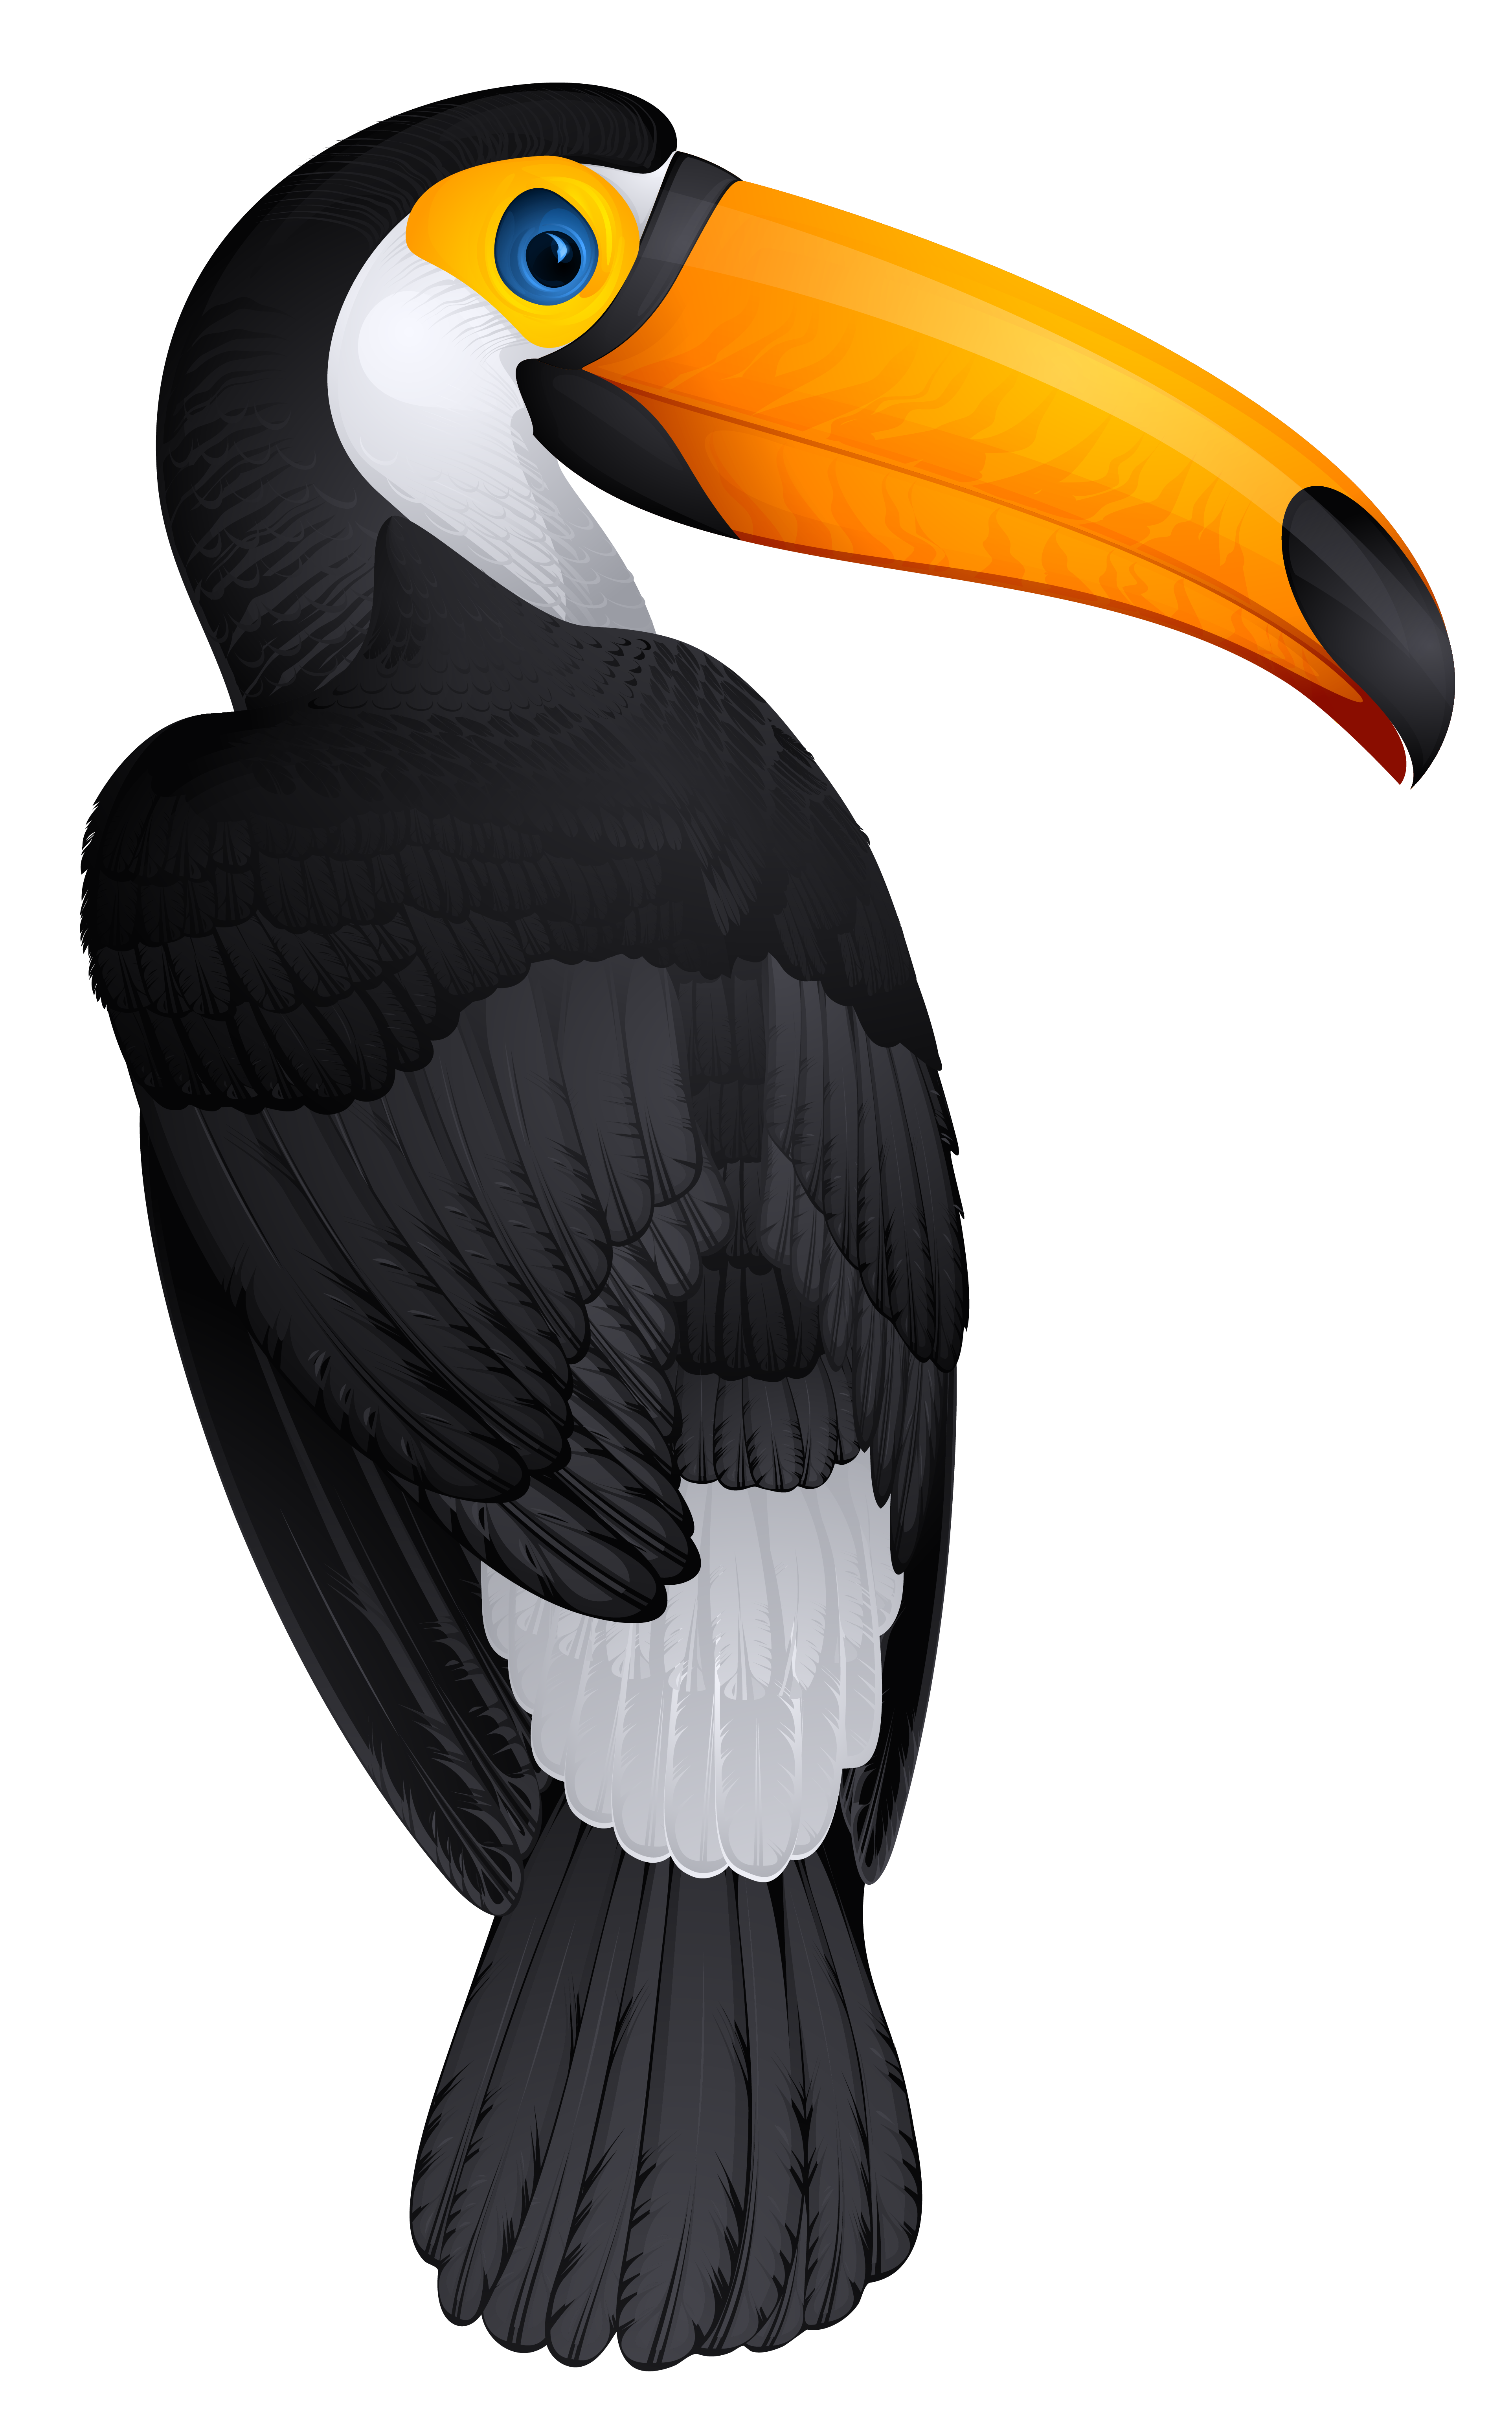 Toucan clipart toucan bird. Png picture gallery yopriceville